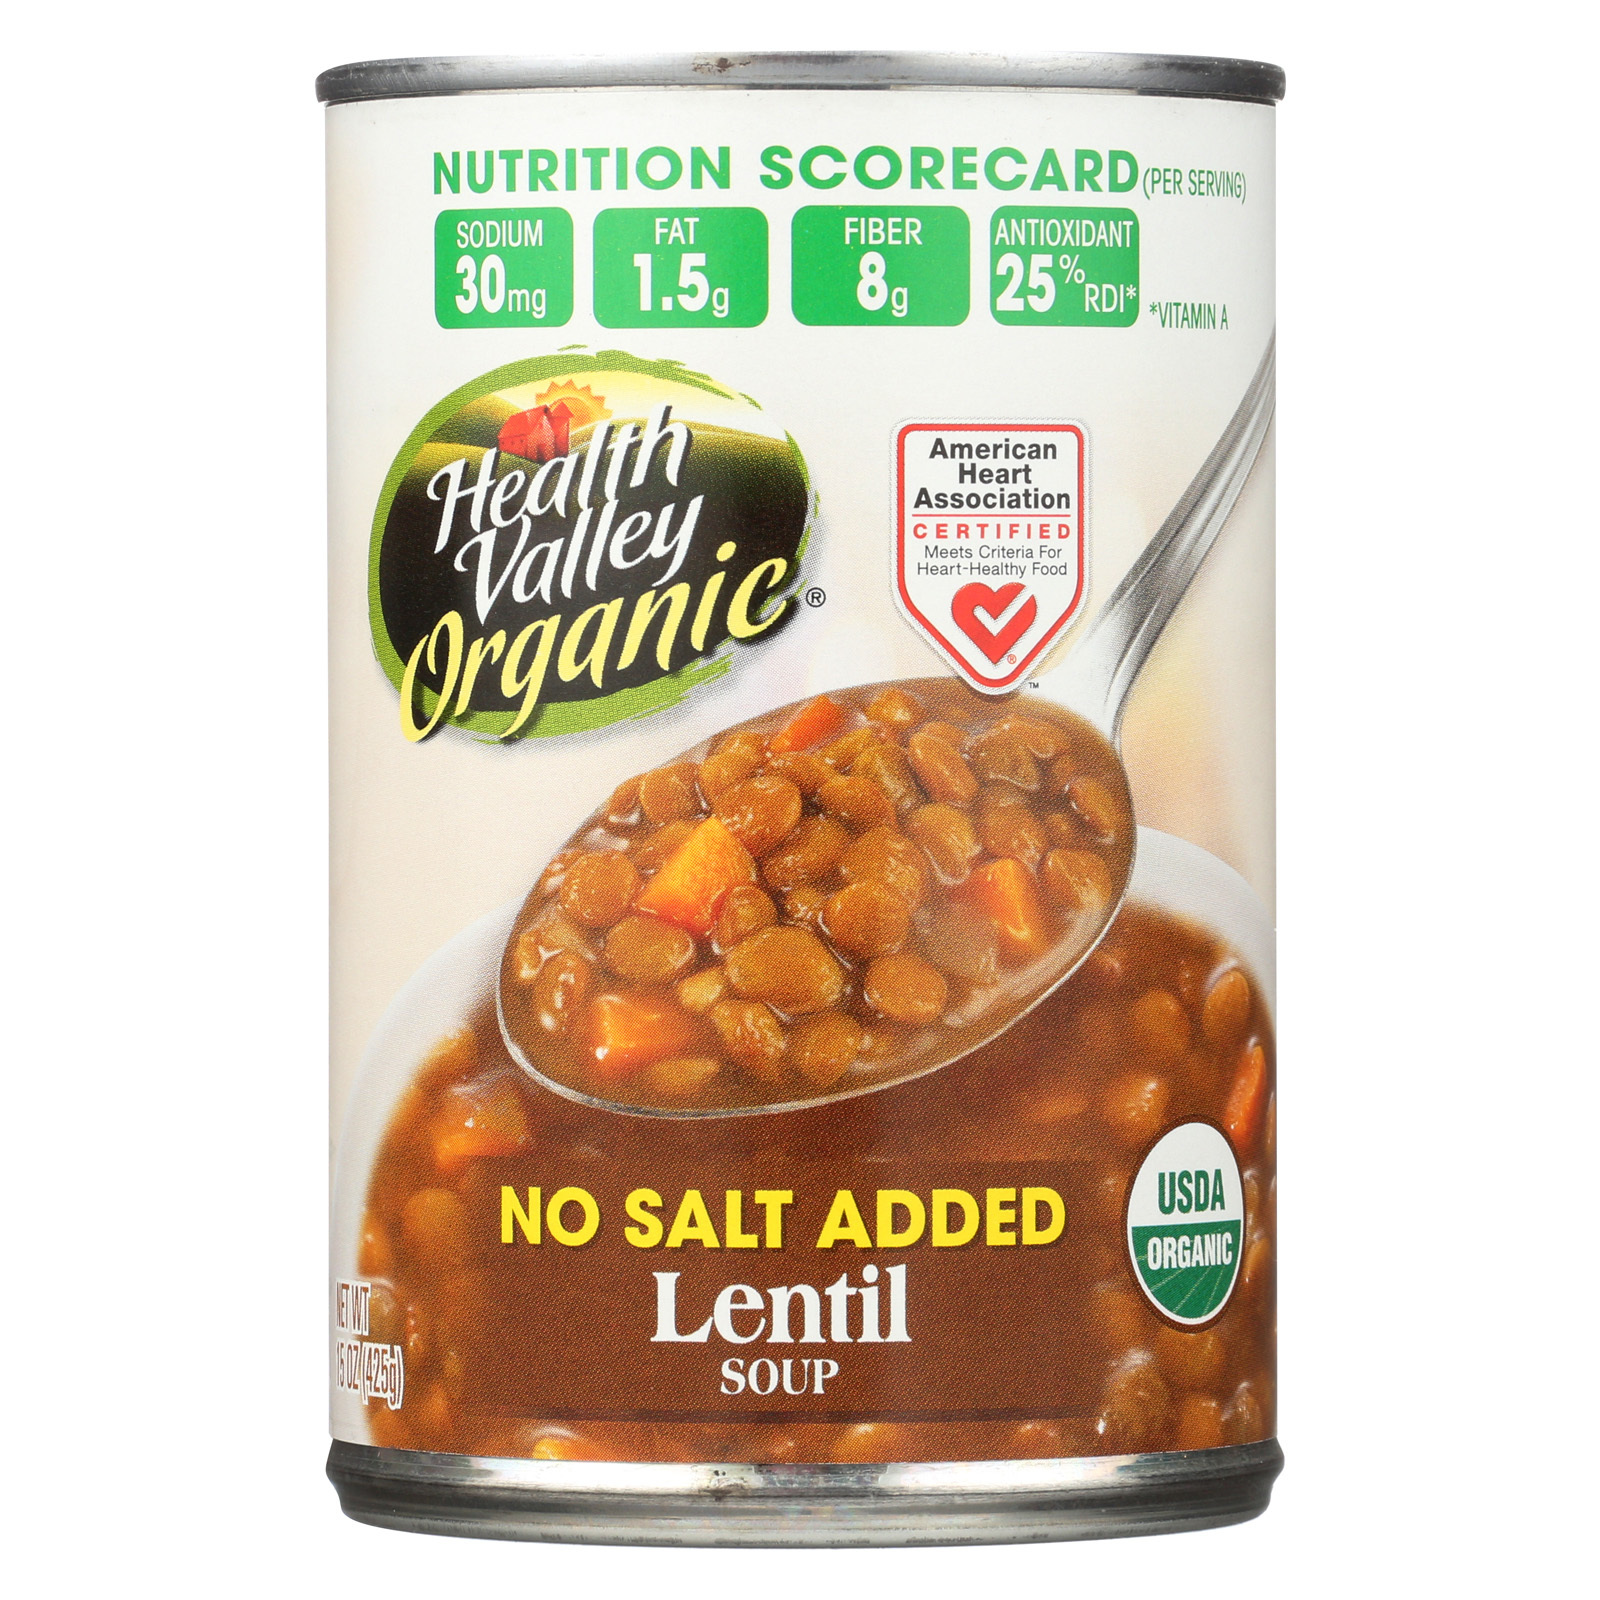 Health Valley Organic Soup - Lentil, No Salt Added - Case of 12 - 15 oz.